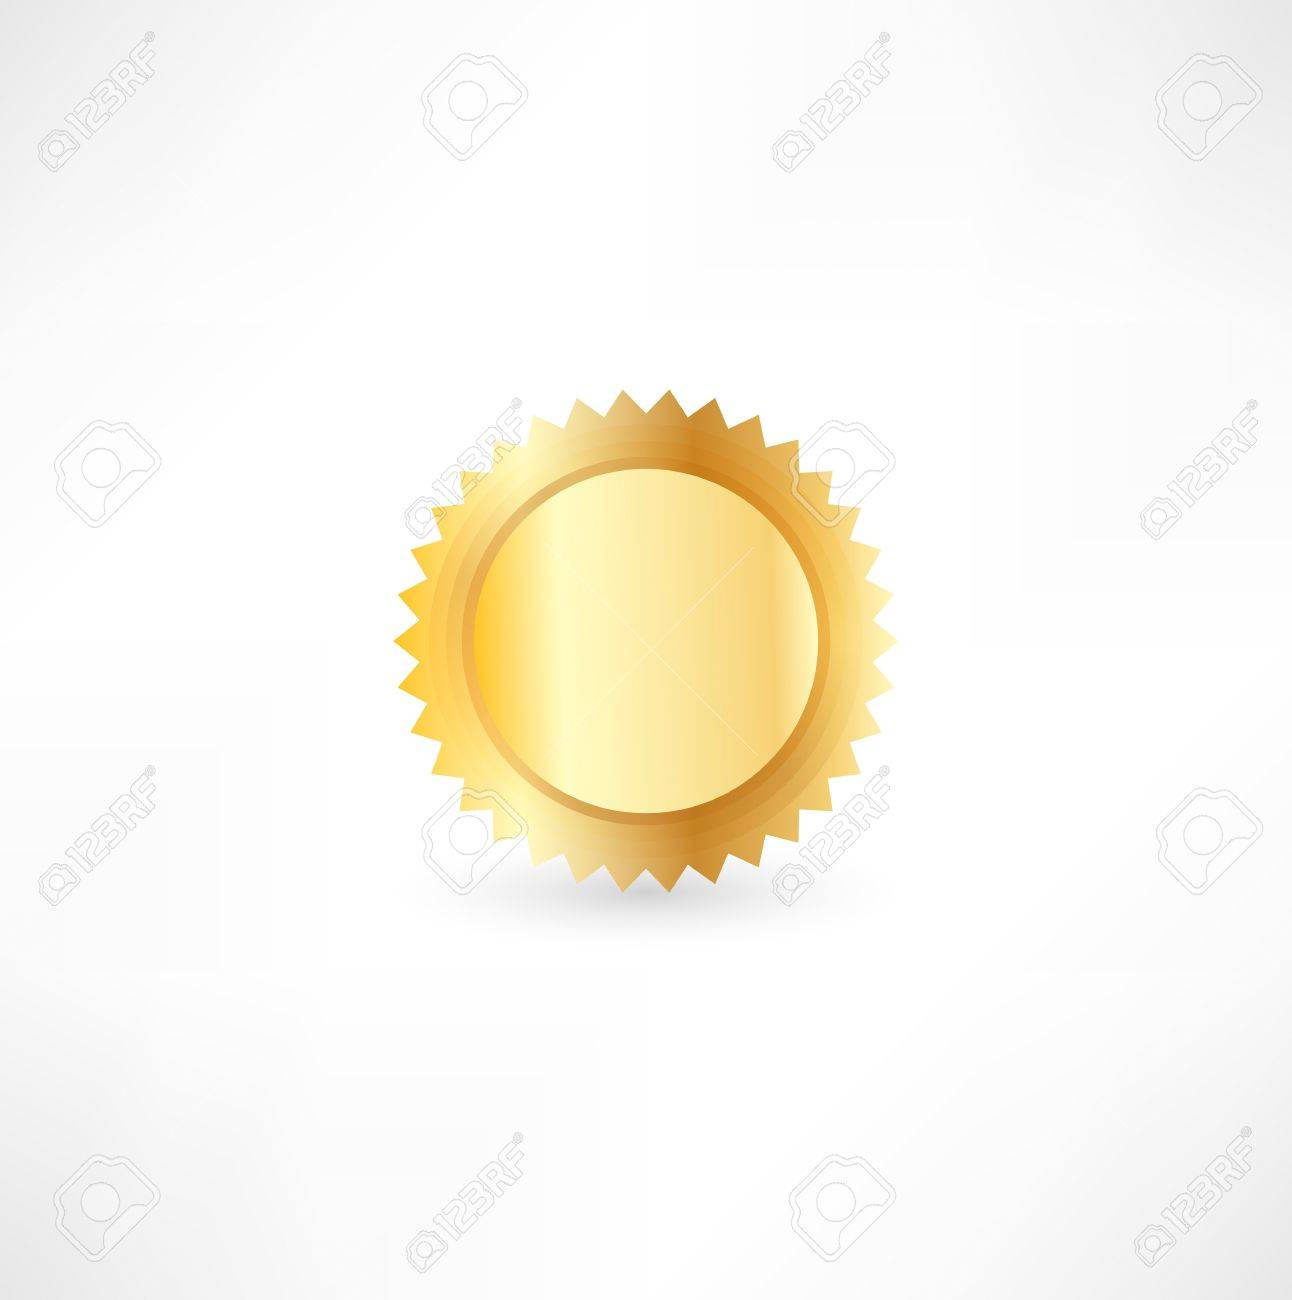 Gold Label Stock Vector - 16138383